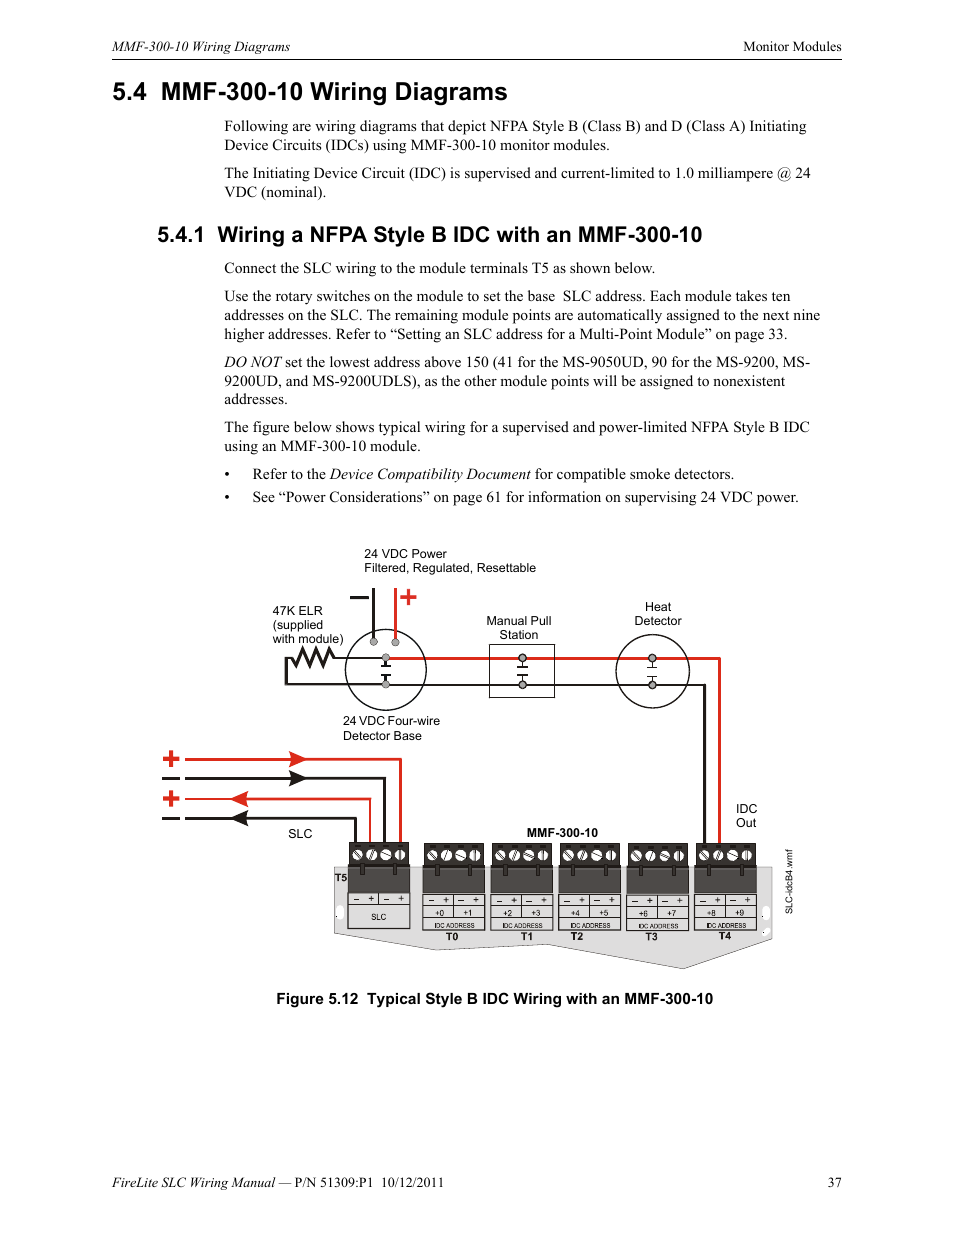 fire lite slc intelligent control panel wiring manual page37 4 mmf 300 10 wiring diagrams, 1 wiring a nfpa style b idc with an Fire Lite by Honeywell at n-0.co